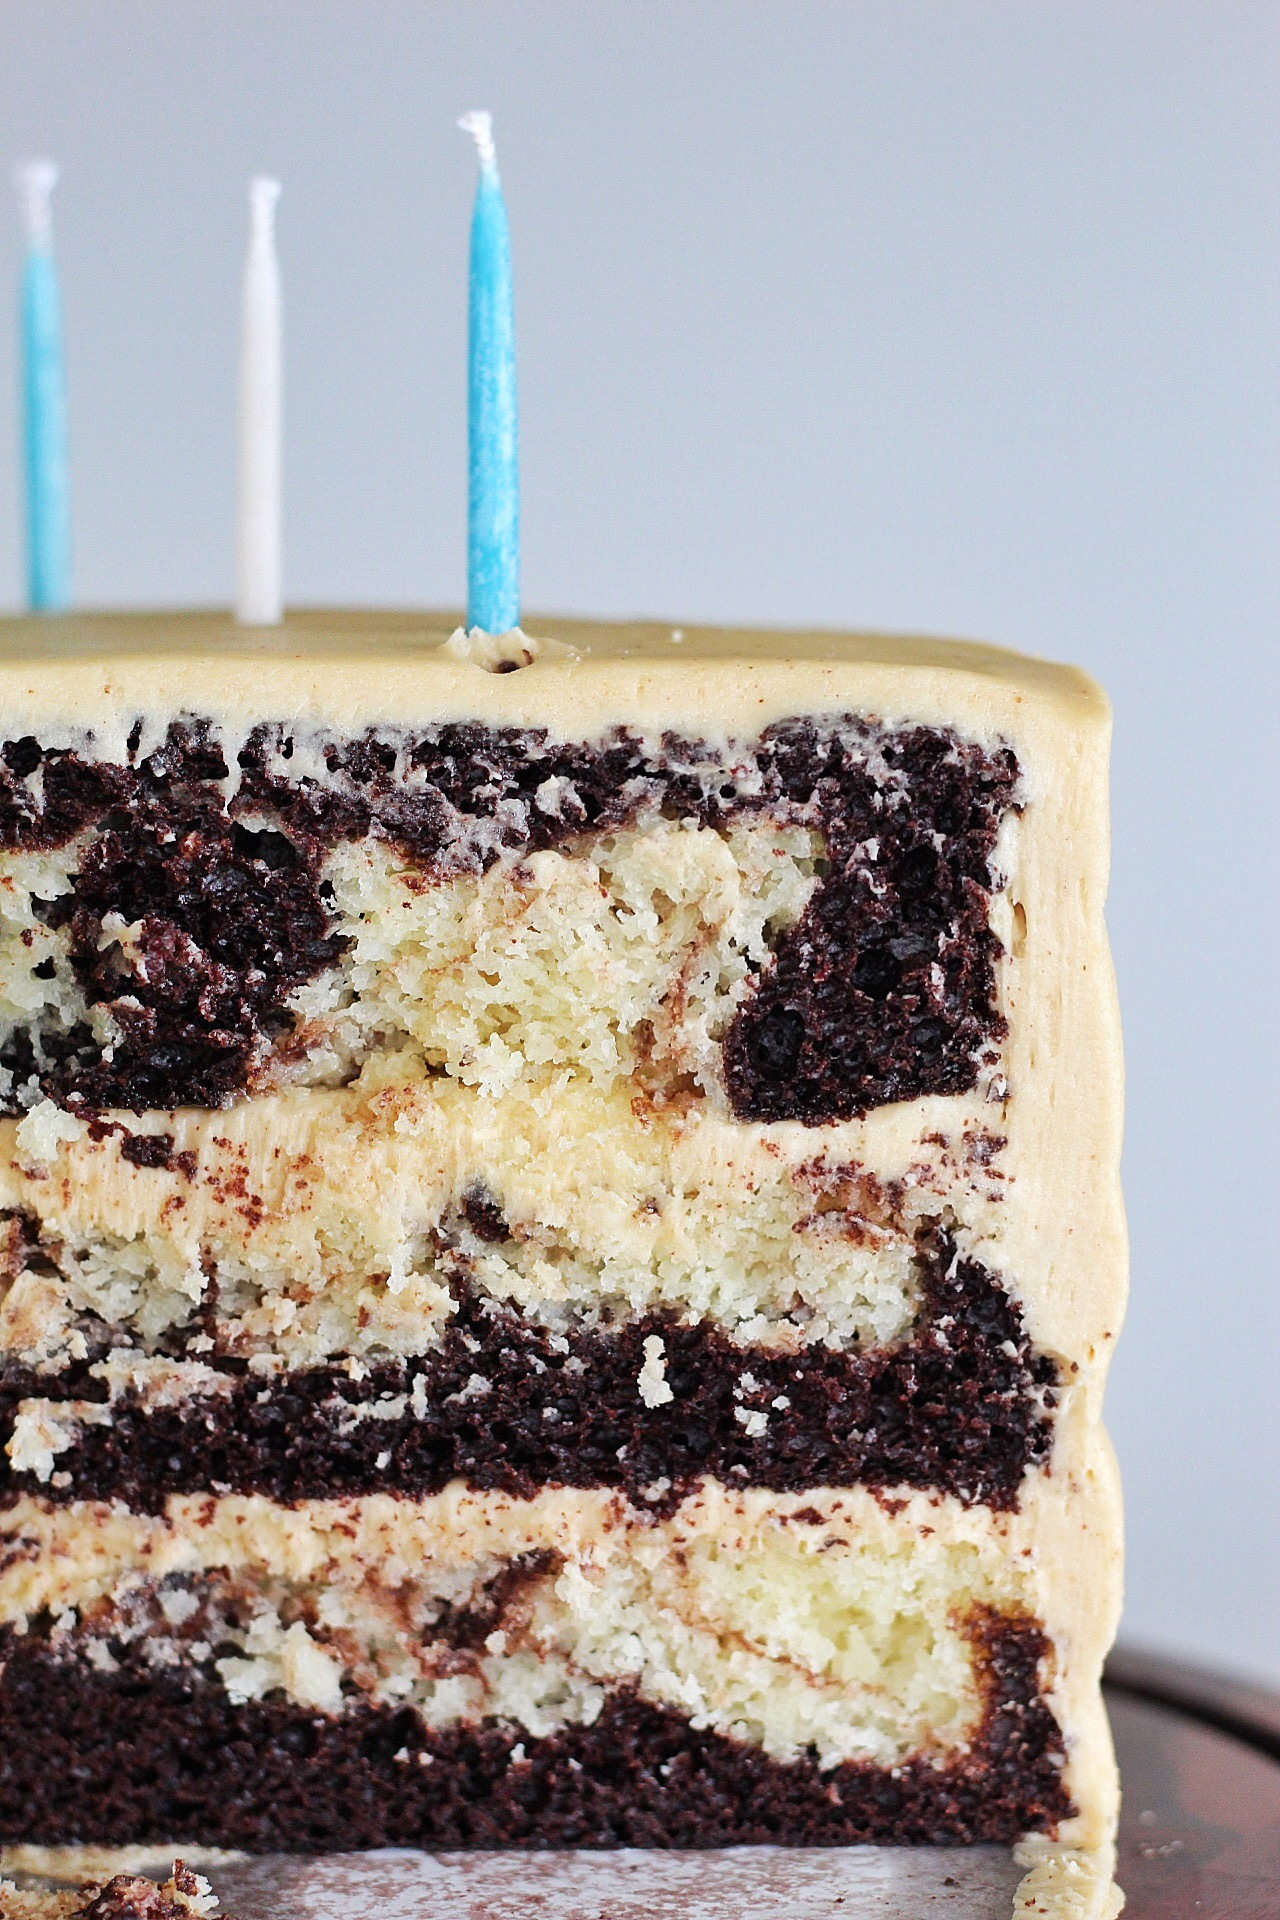 Super Moist Marble Cake: Tender and moist chocolate and vanilla cake are swirled together to make this delicious, from-scratch marble cake that I paired with peanut butter frosting. #cakebycourtney #marblecake #easymarblecakerecipe #cakerecipe #moistcakerecipe #supermoistmarblecake